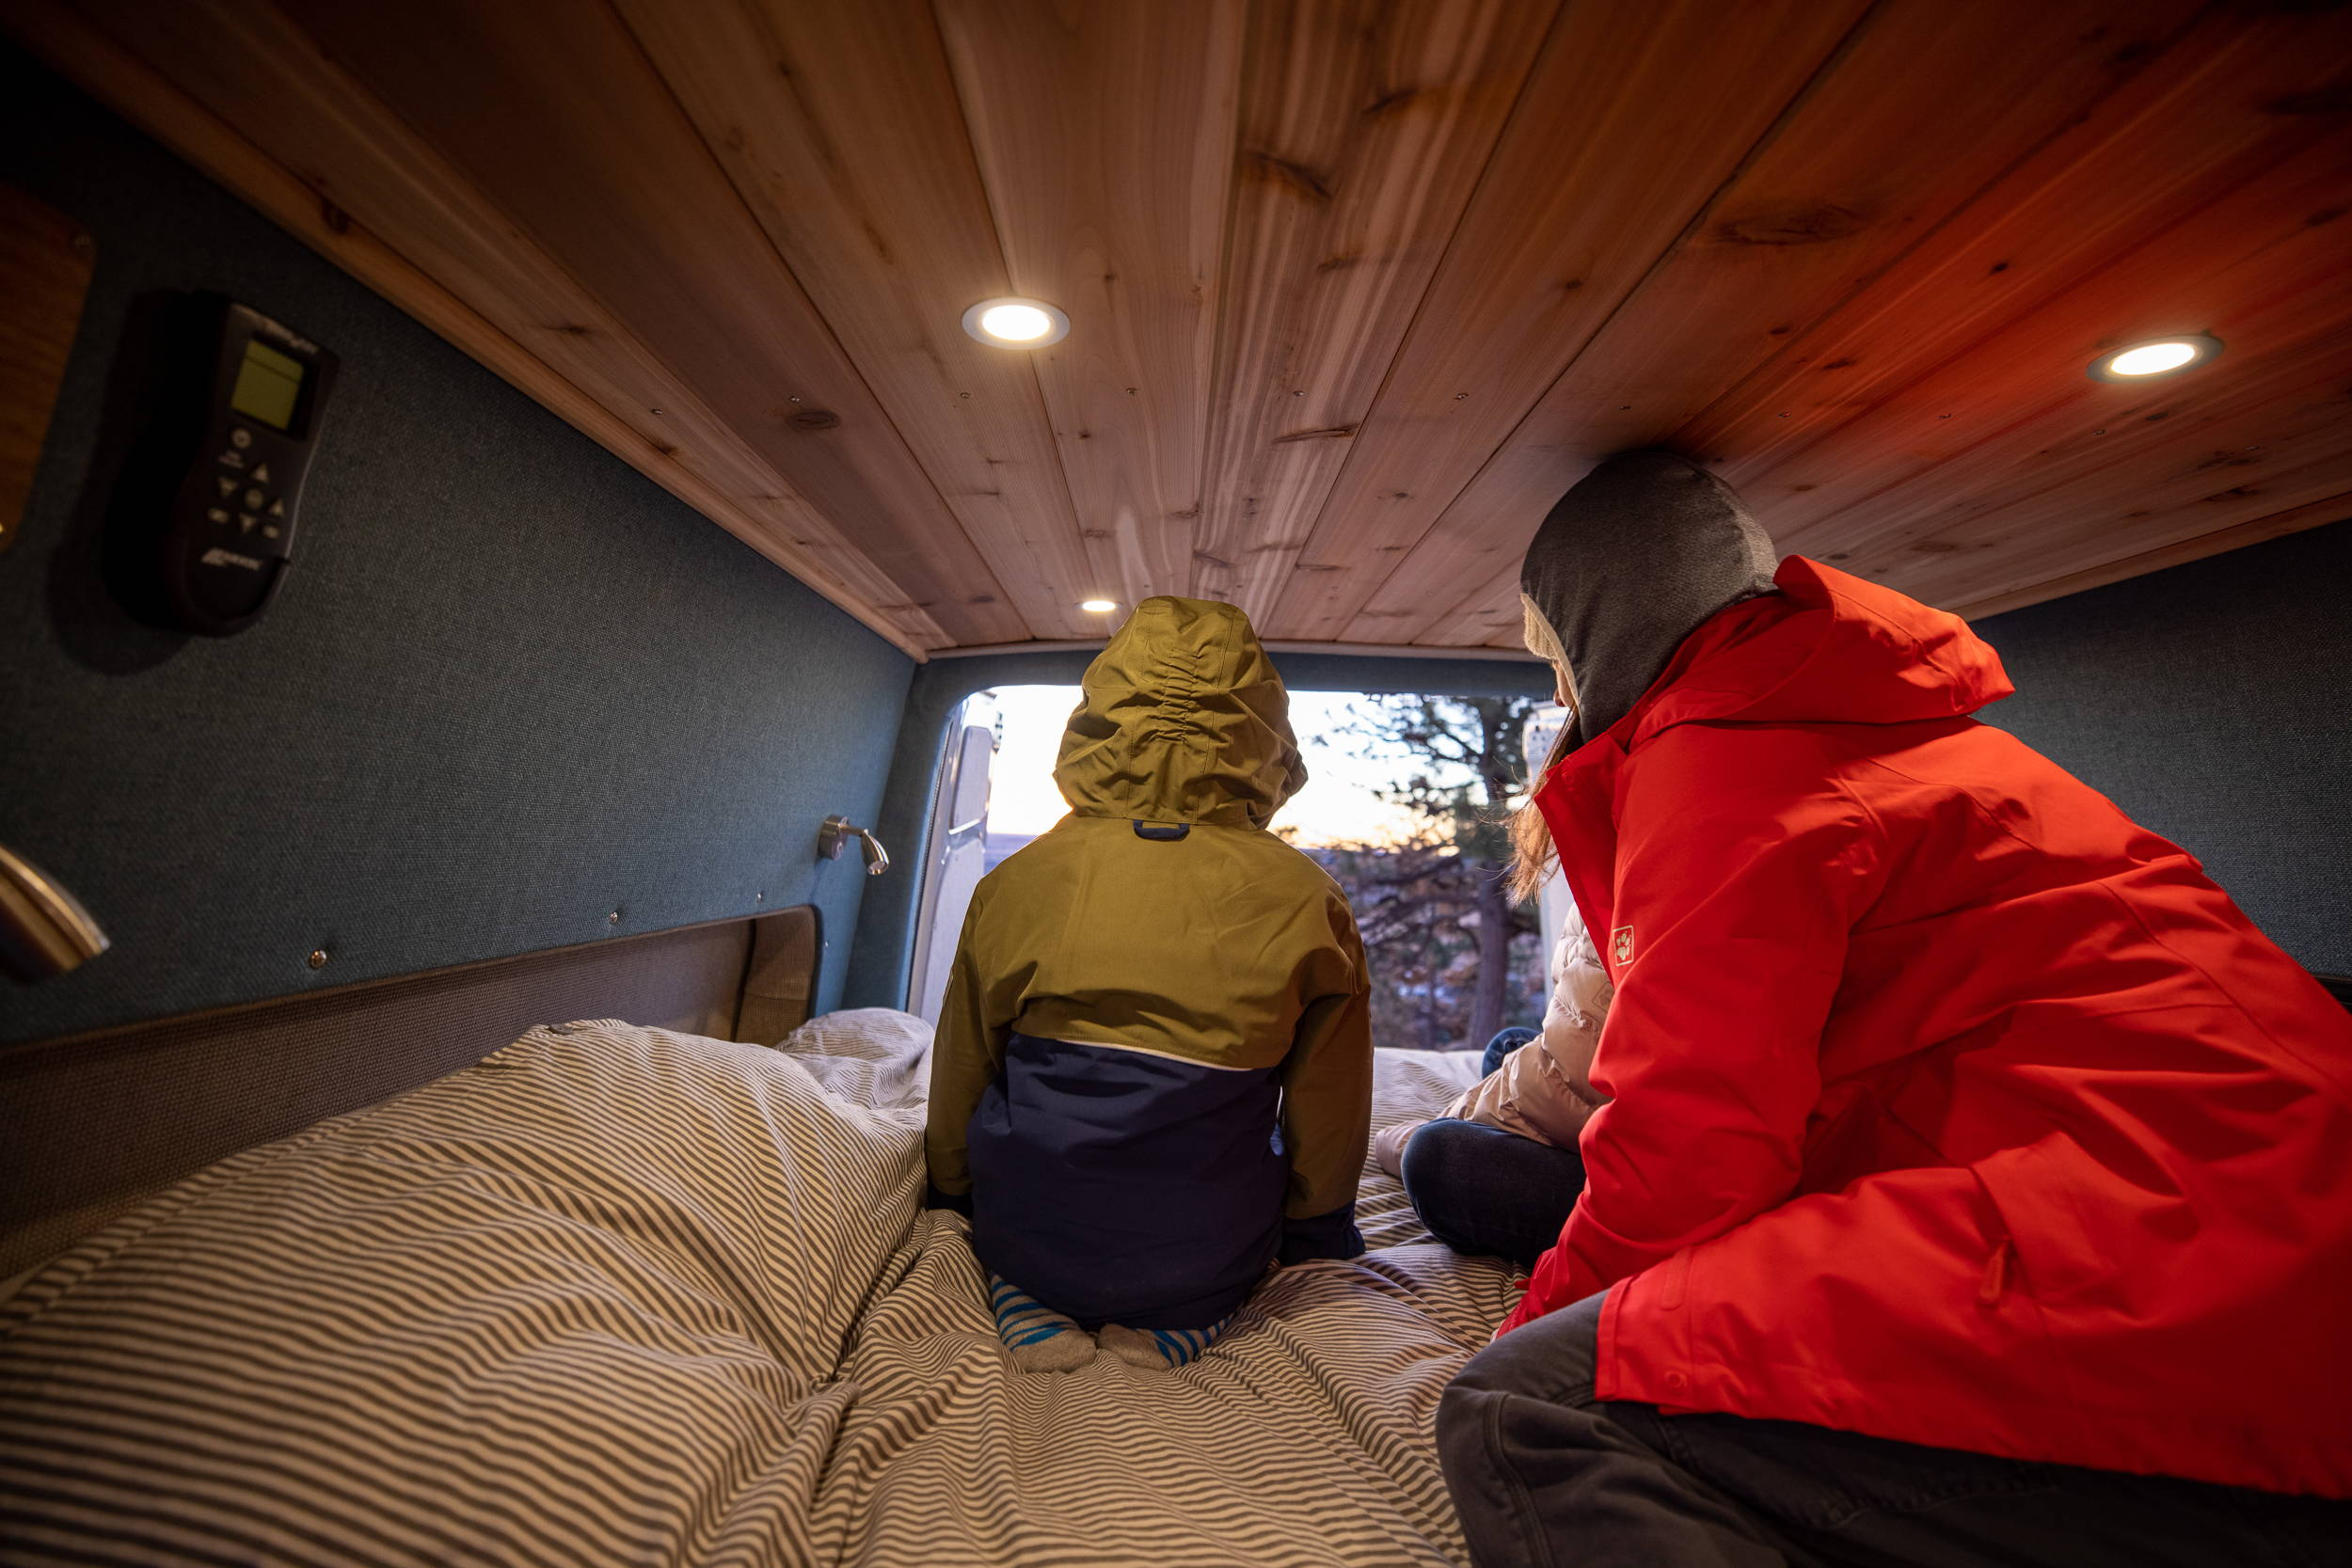 Rack & Roll - Sprinter 144 Van Conversion - Woman and Children Enjoy View from Lofted Bed - The Vansmith